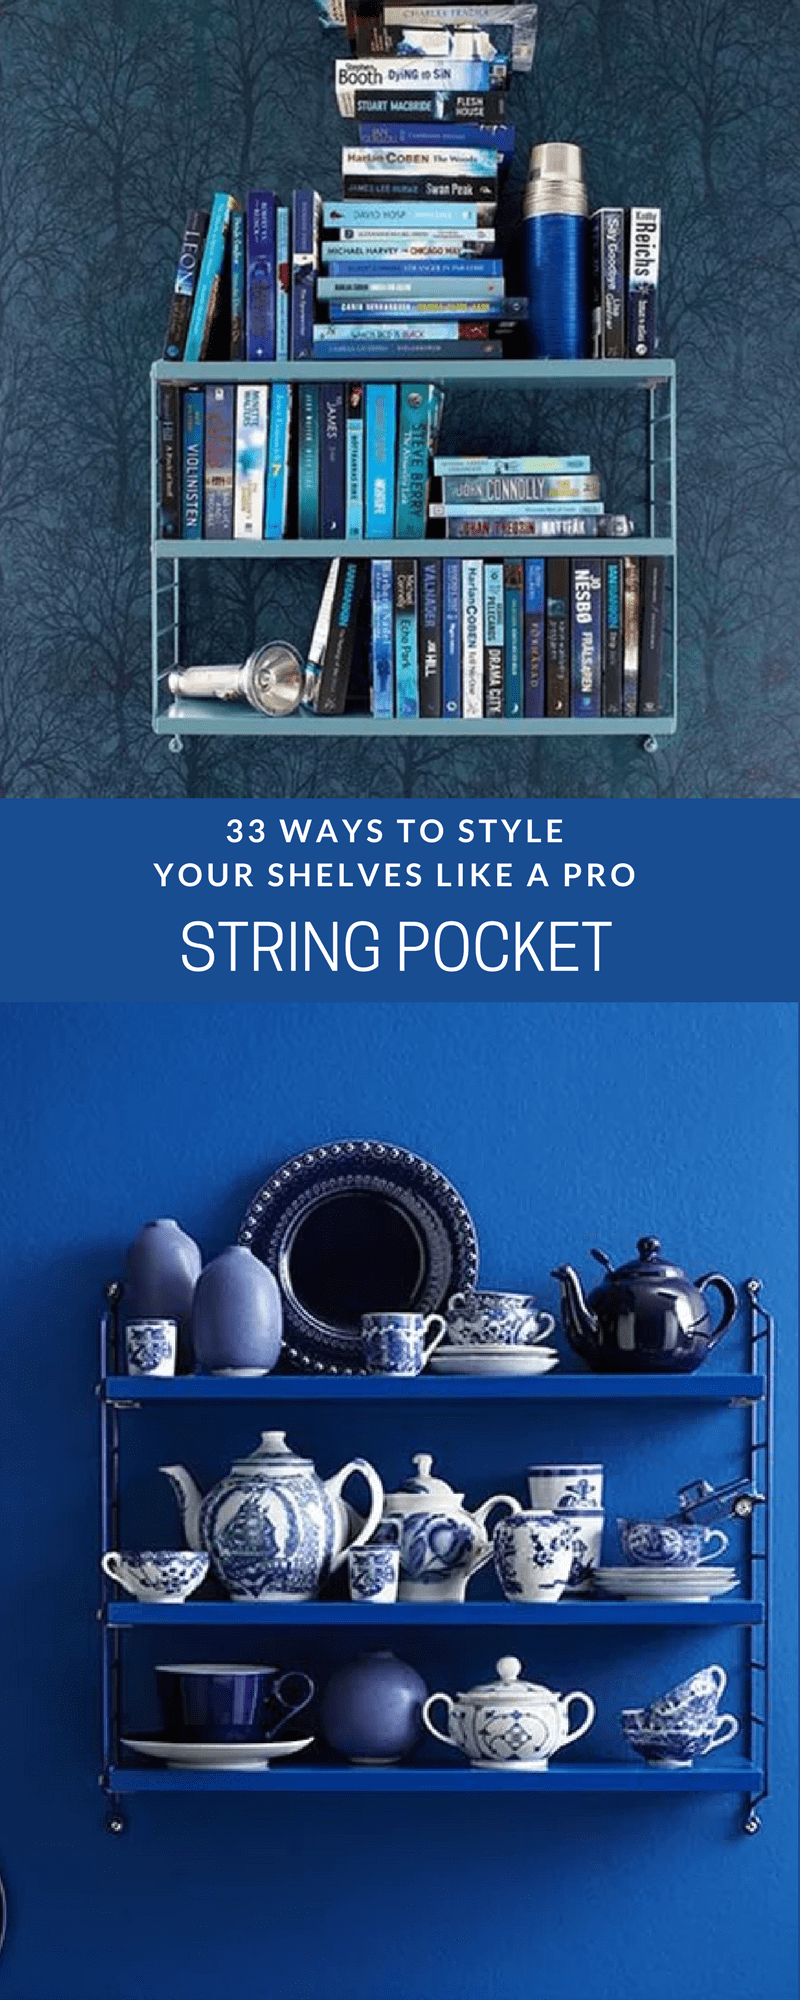 a String Pocket shelving system in blue against a blue wall and packed with blue ceramics